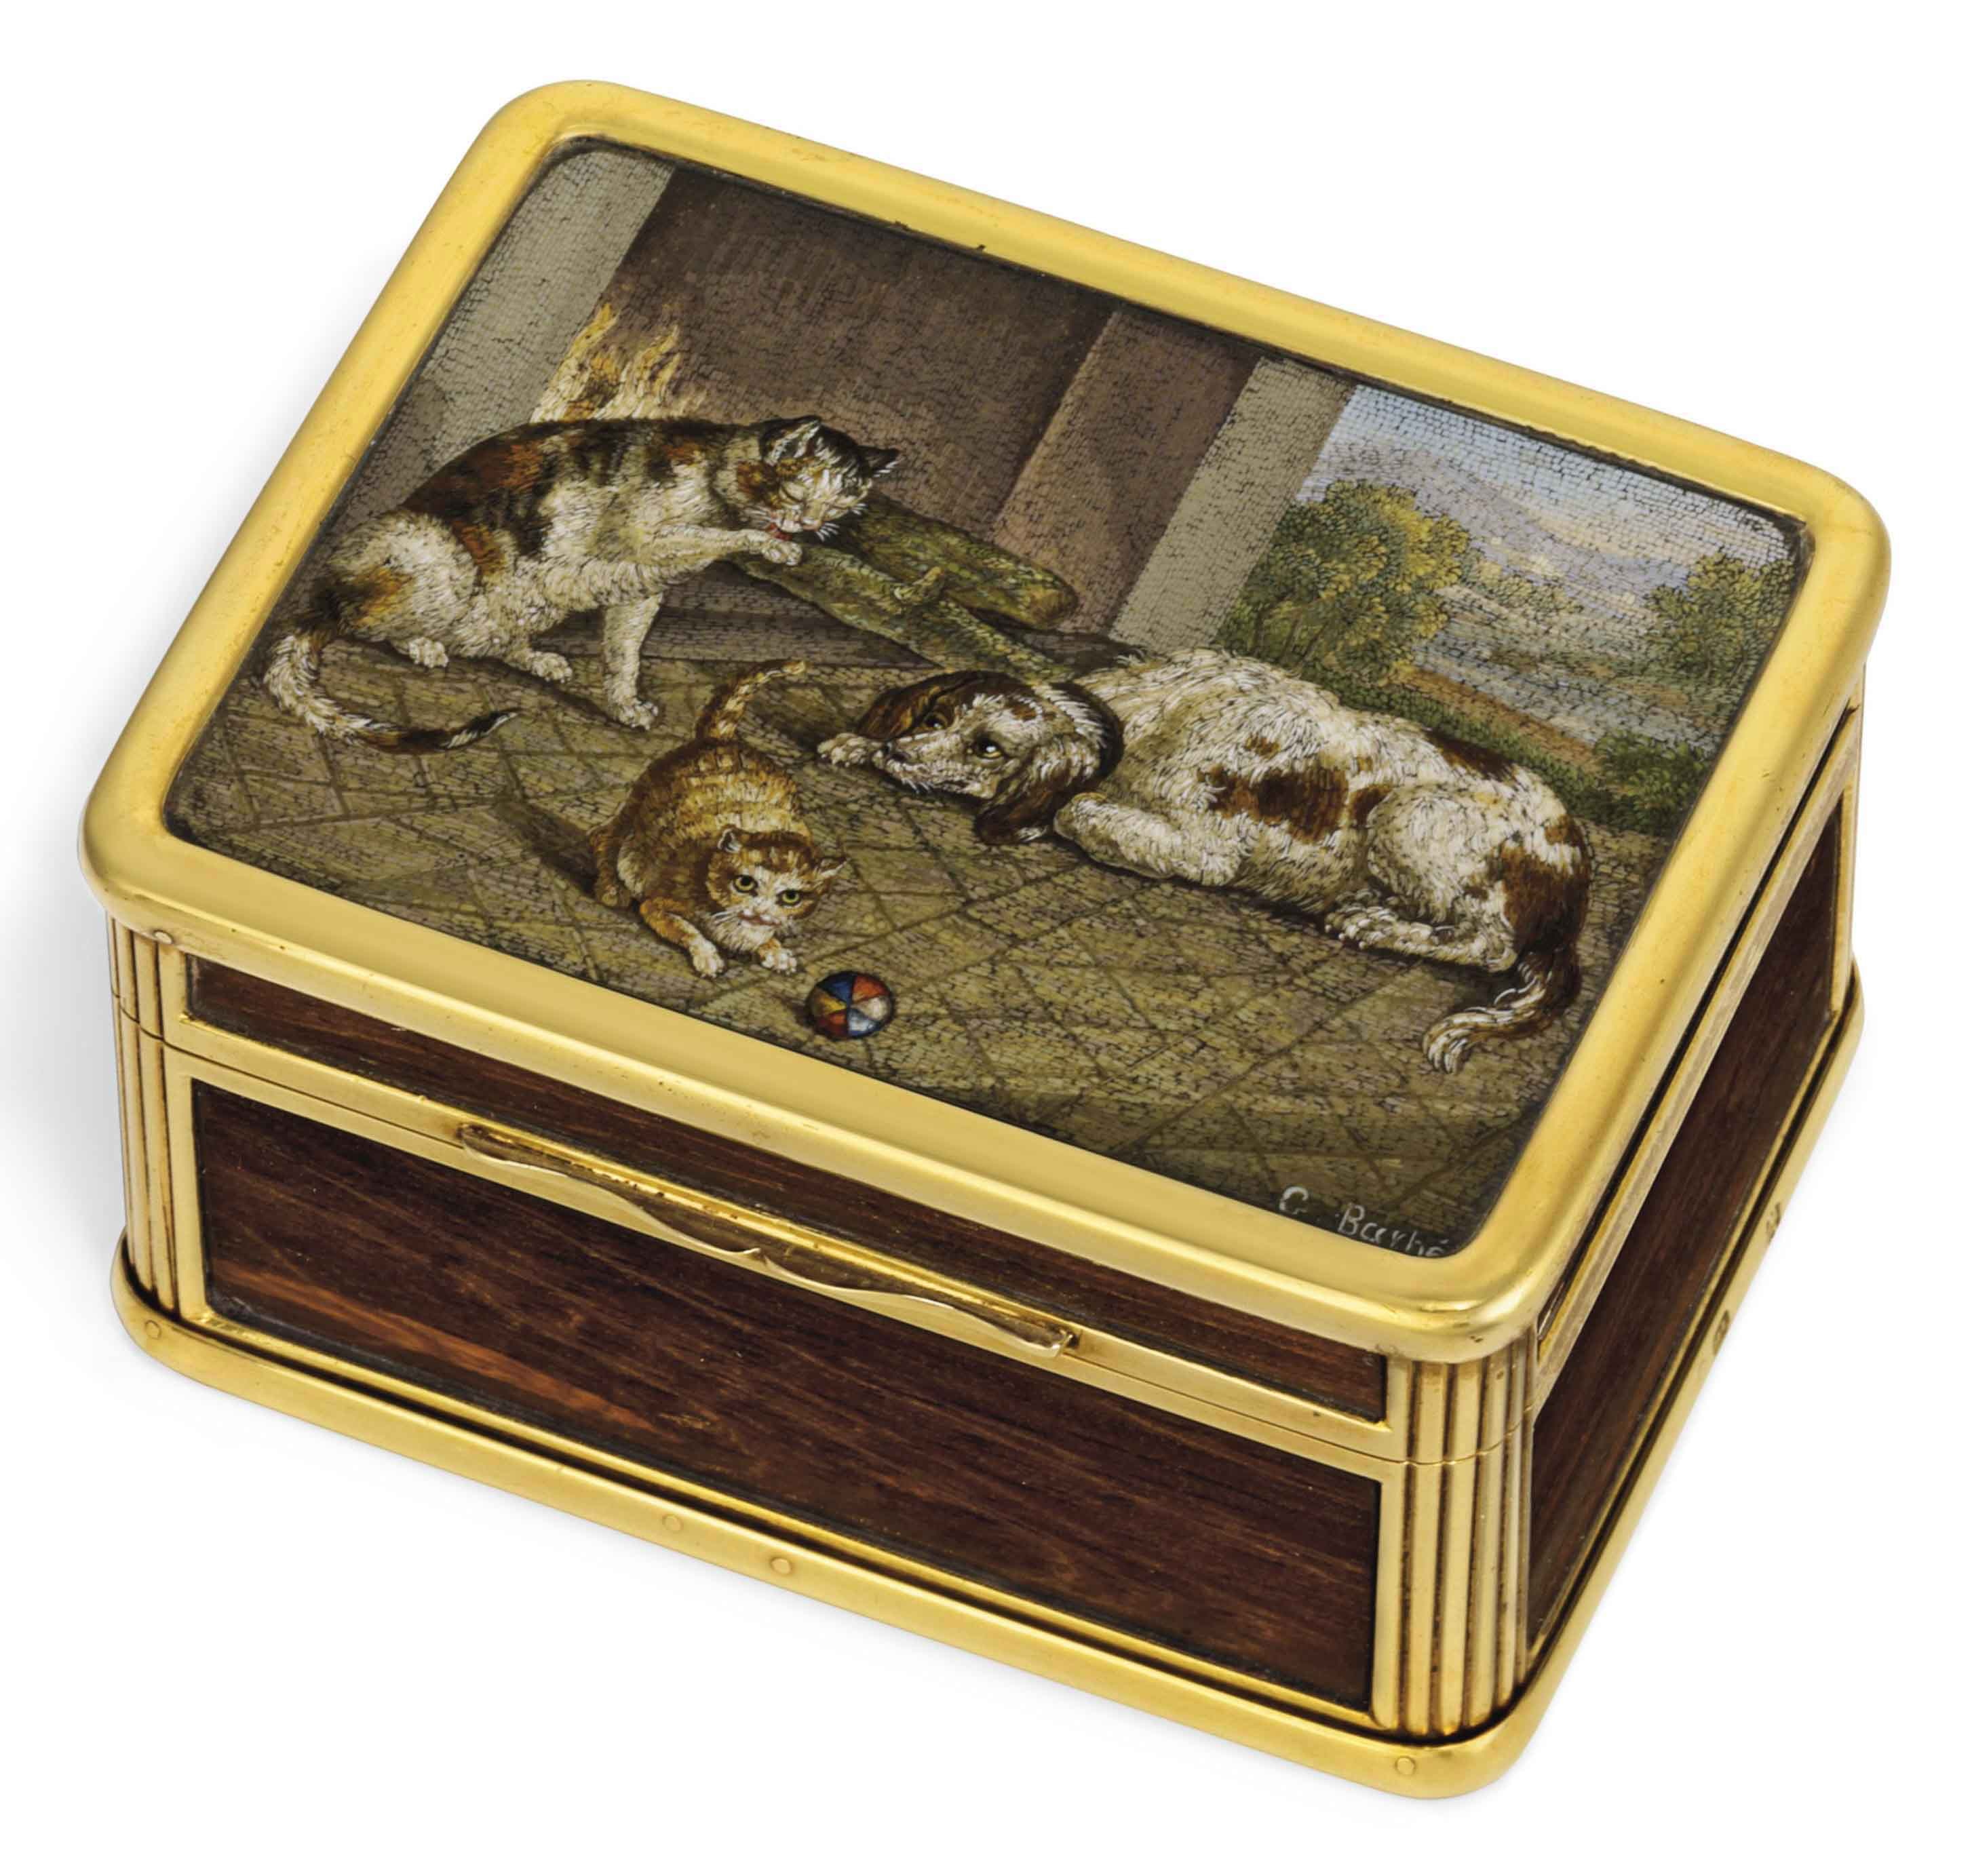 A FINE VICTORIAN GOLD-MOUNTED WOOD SNUFF-BOX SET WITH A MICROMOSAIC